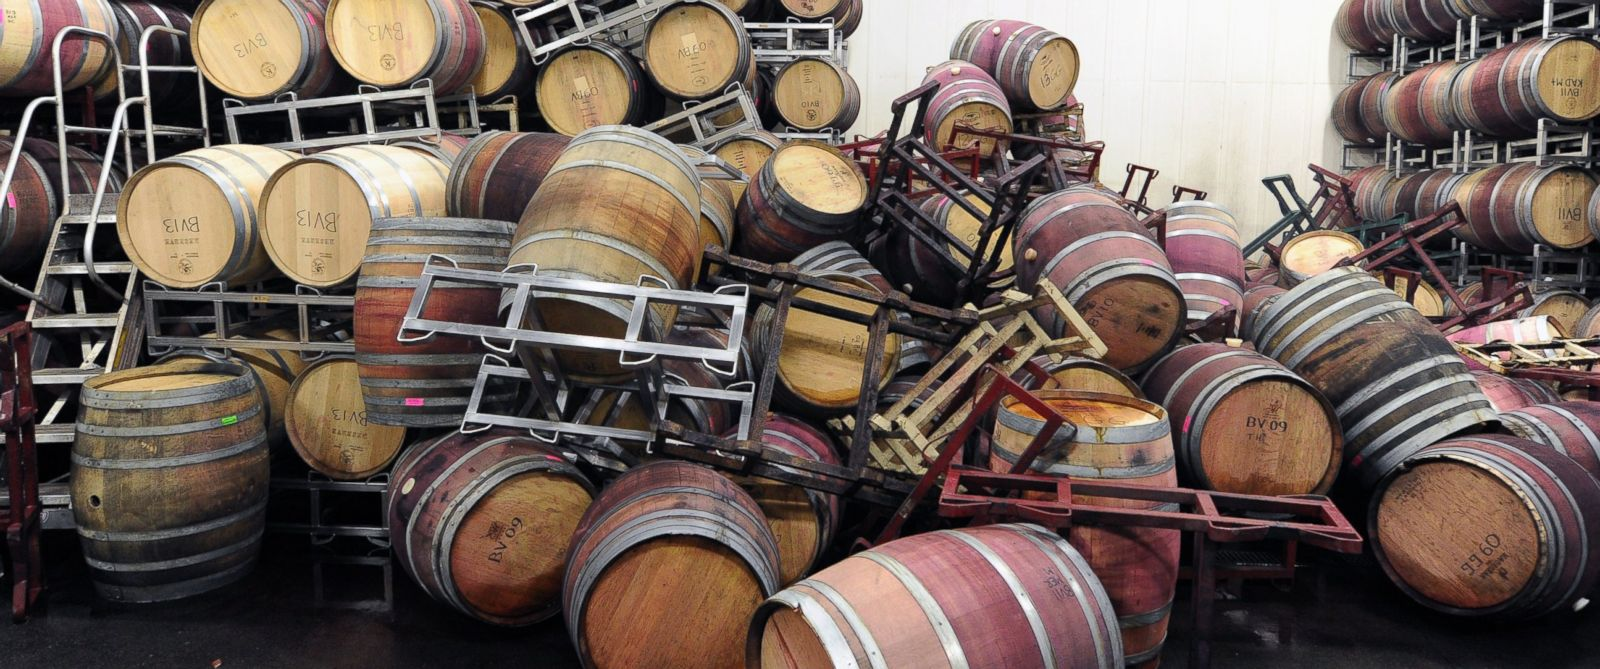 PHOTO: Barrels are strewn about inside the storage room of Bouchaine Vineyards in Napa, Calif. on Aug. 24, 2014.